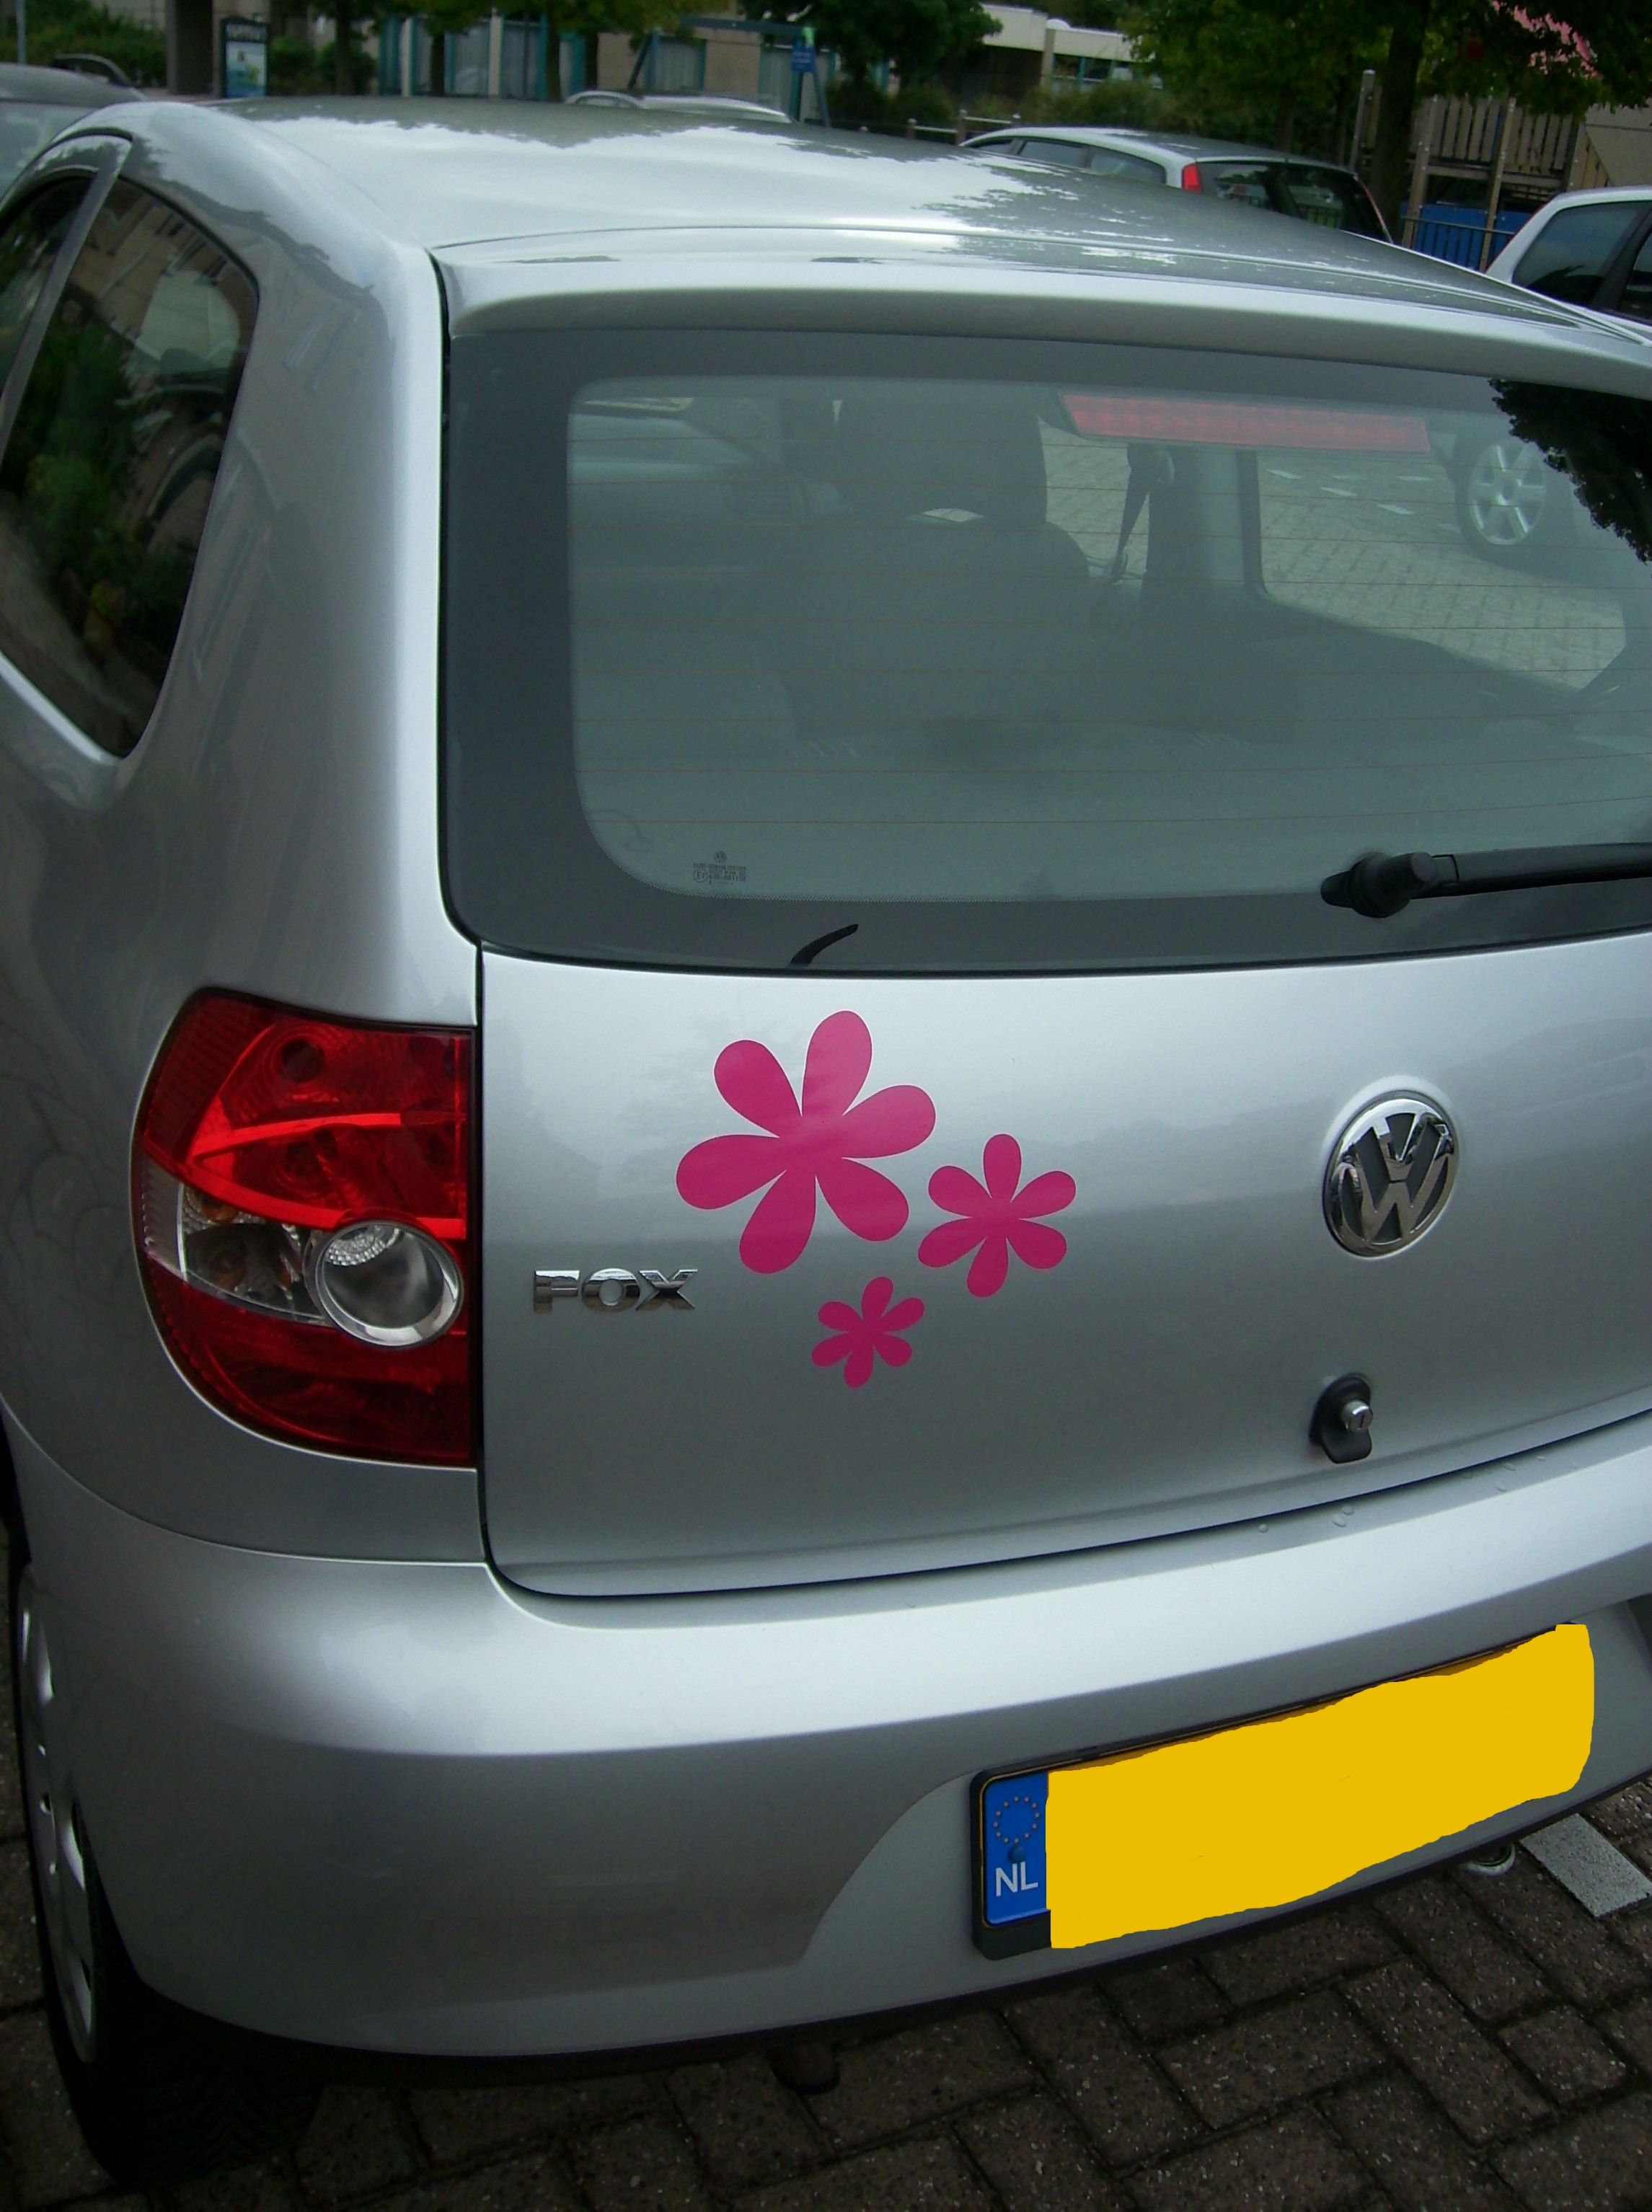 Klantenfoto bloemen sticker van www.auto-stickers.be